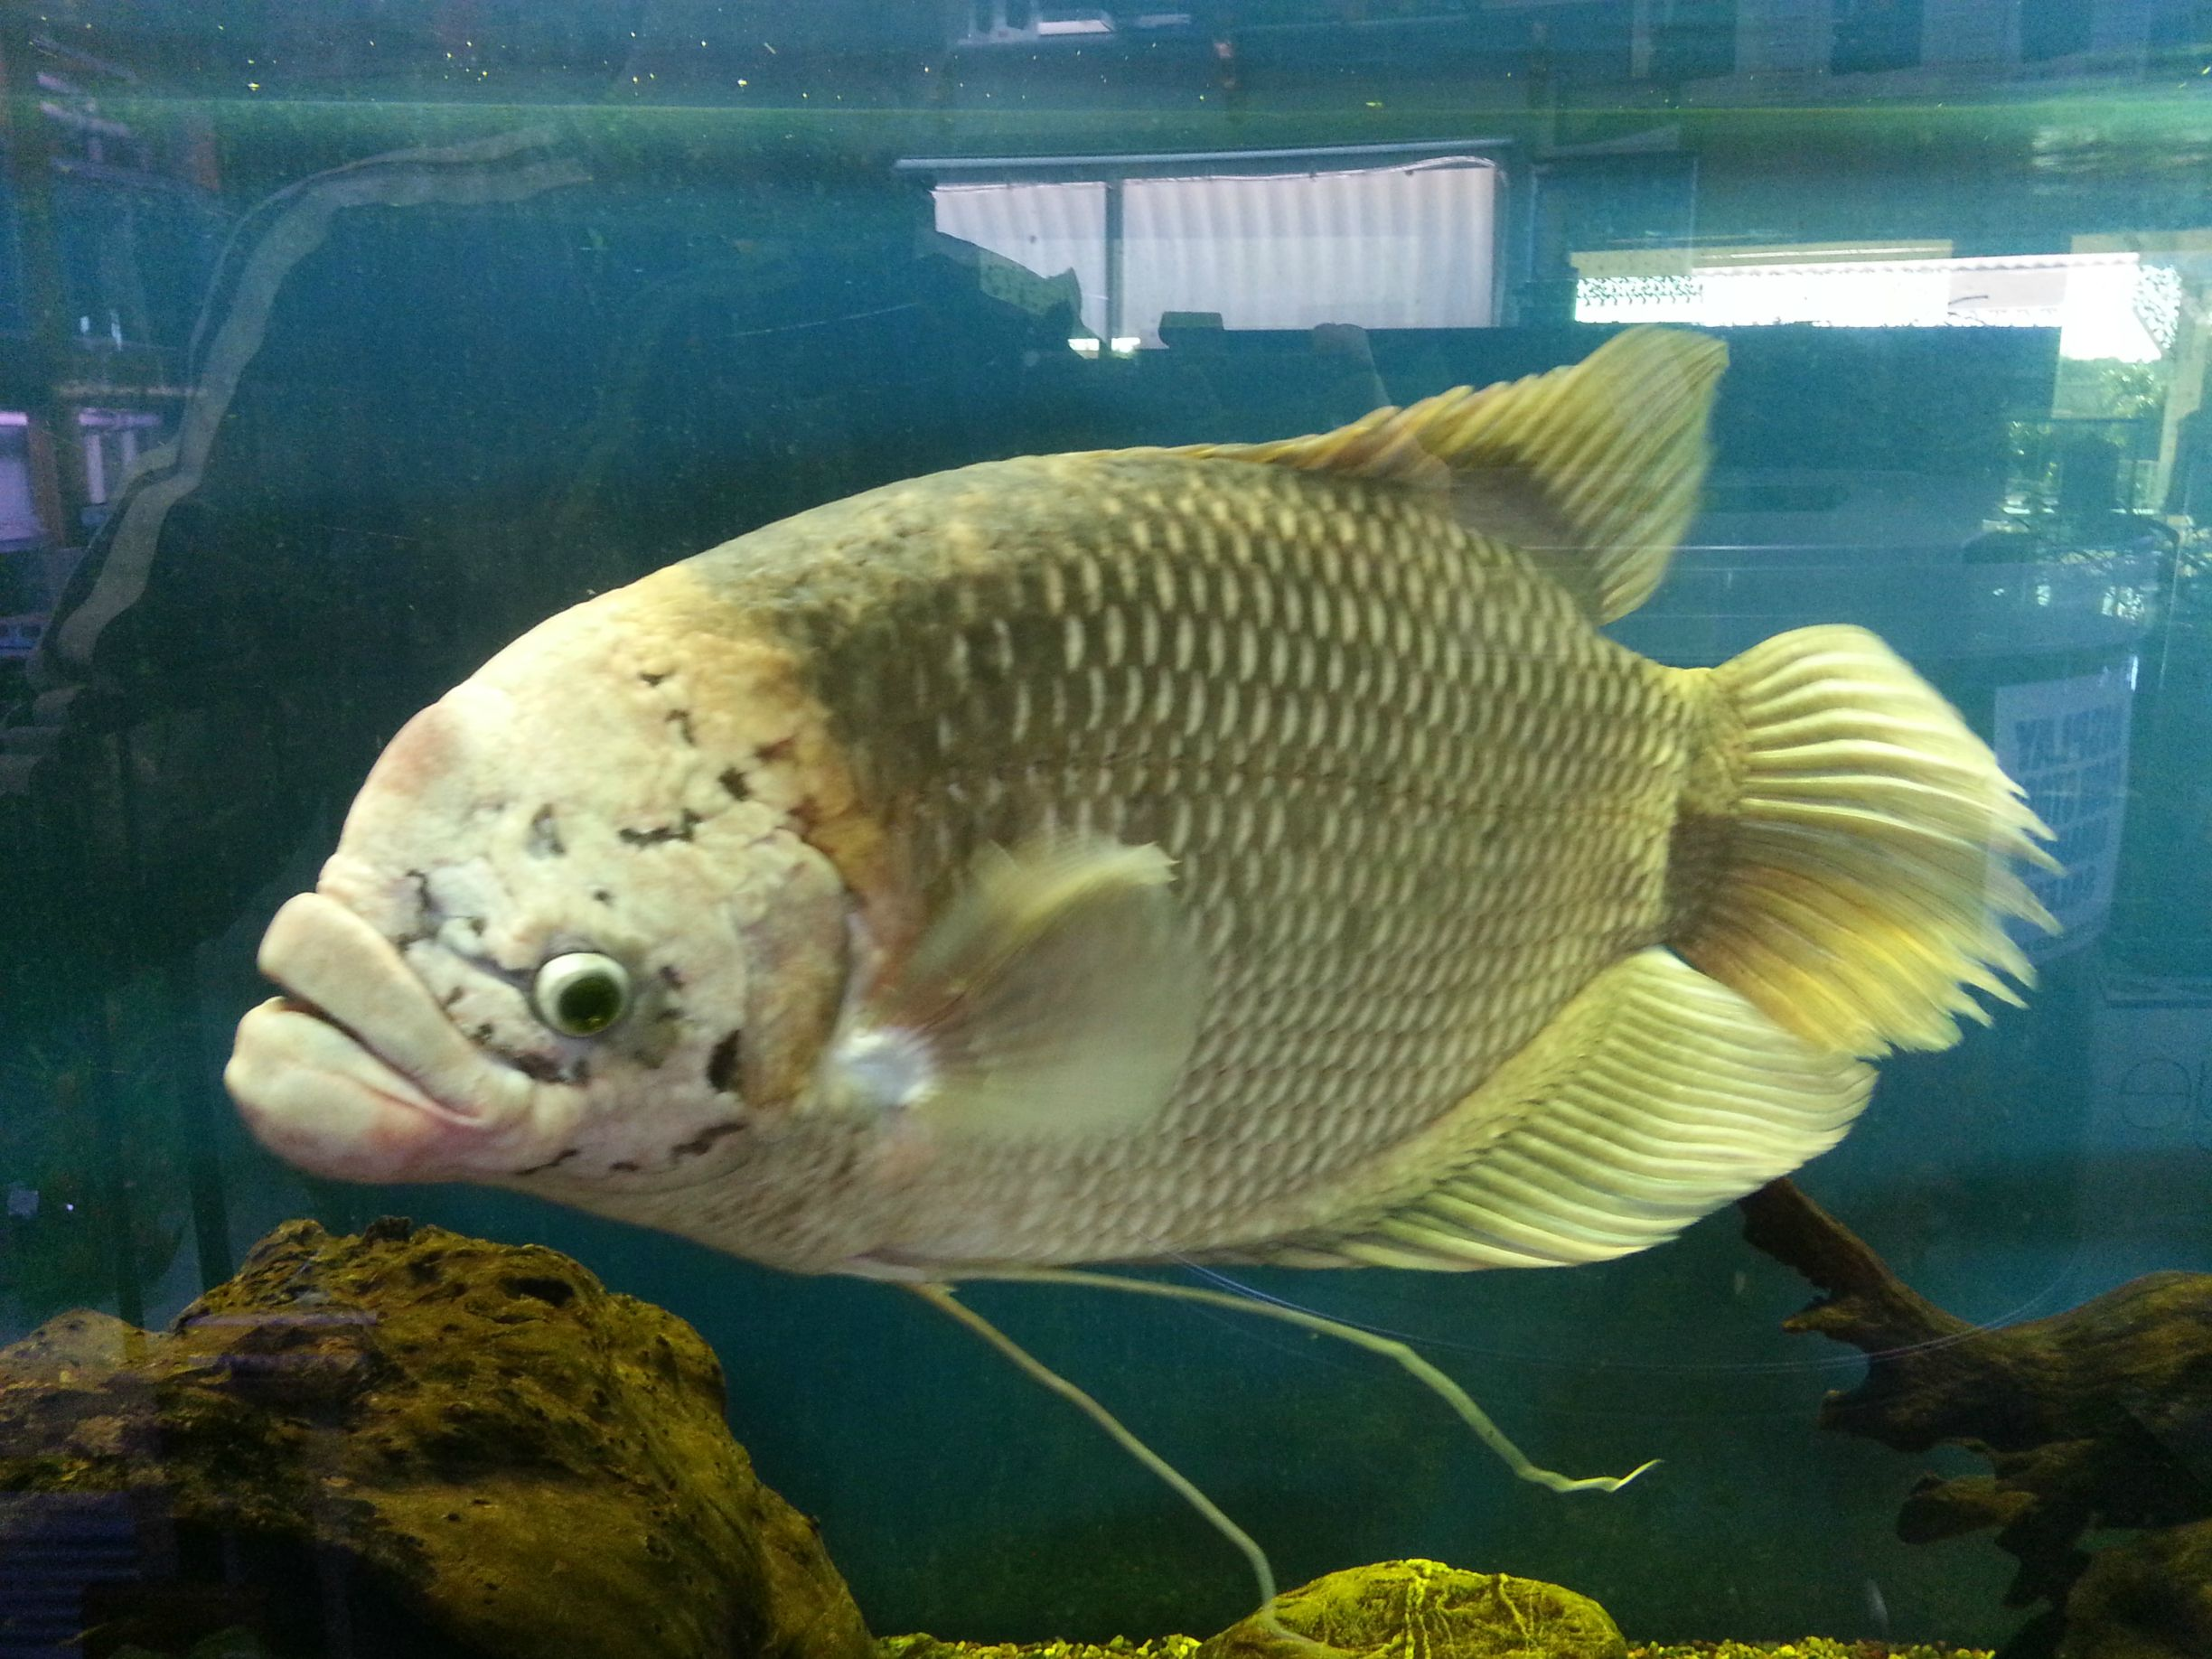 Giant gourami swims wallpaper